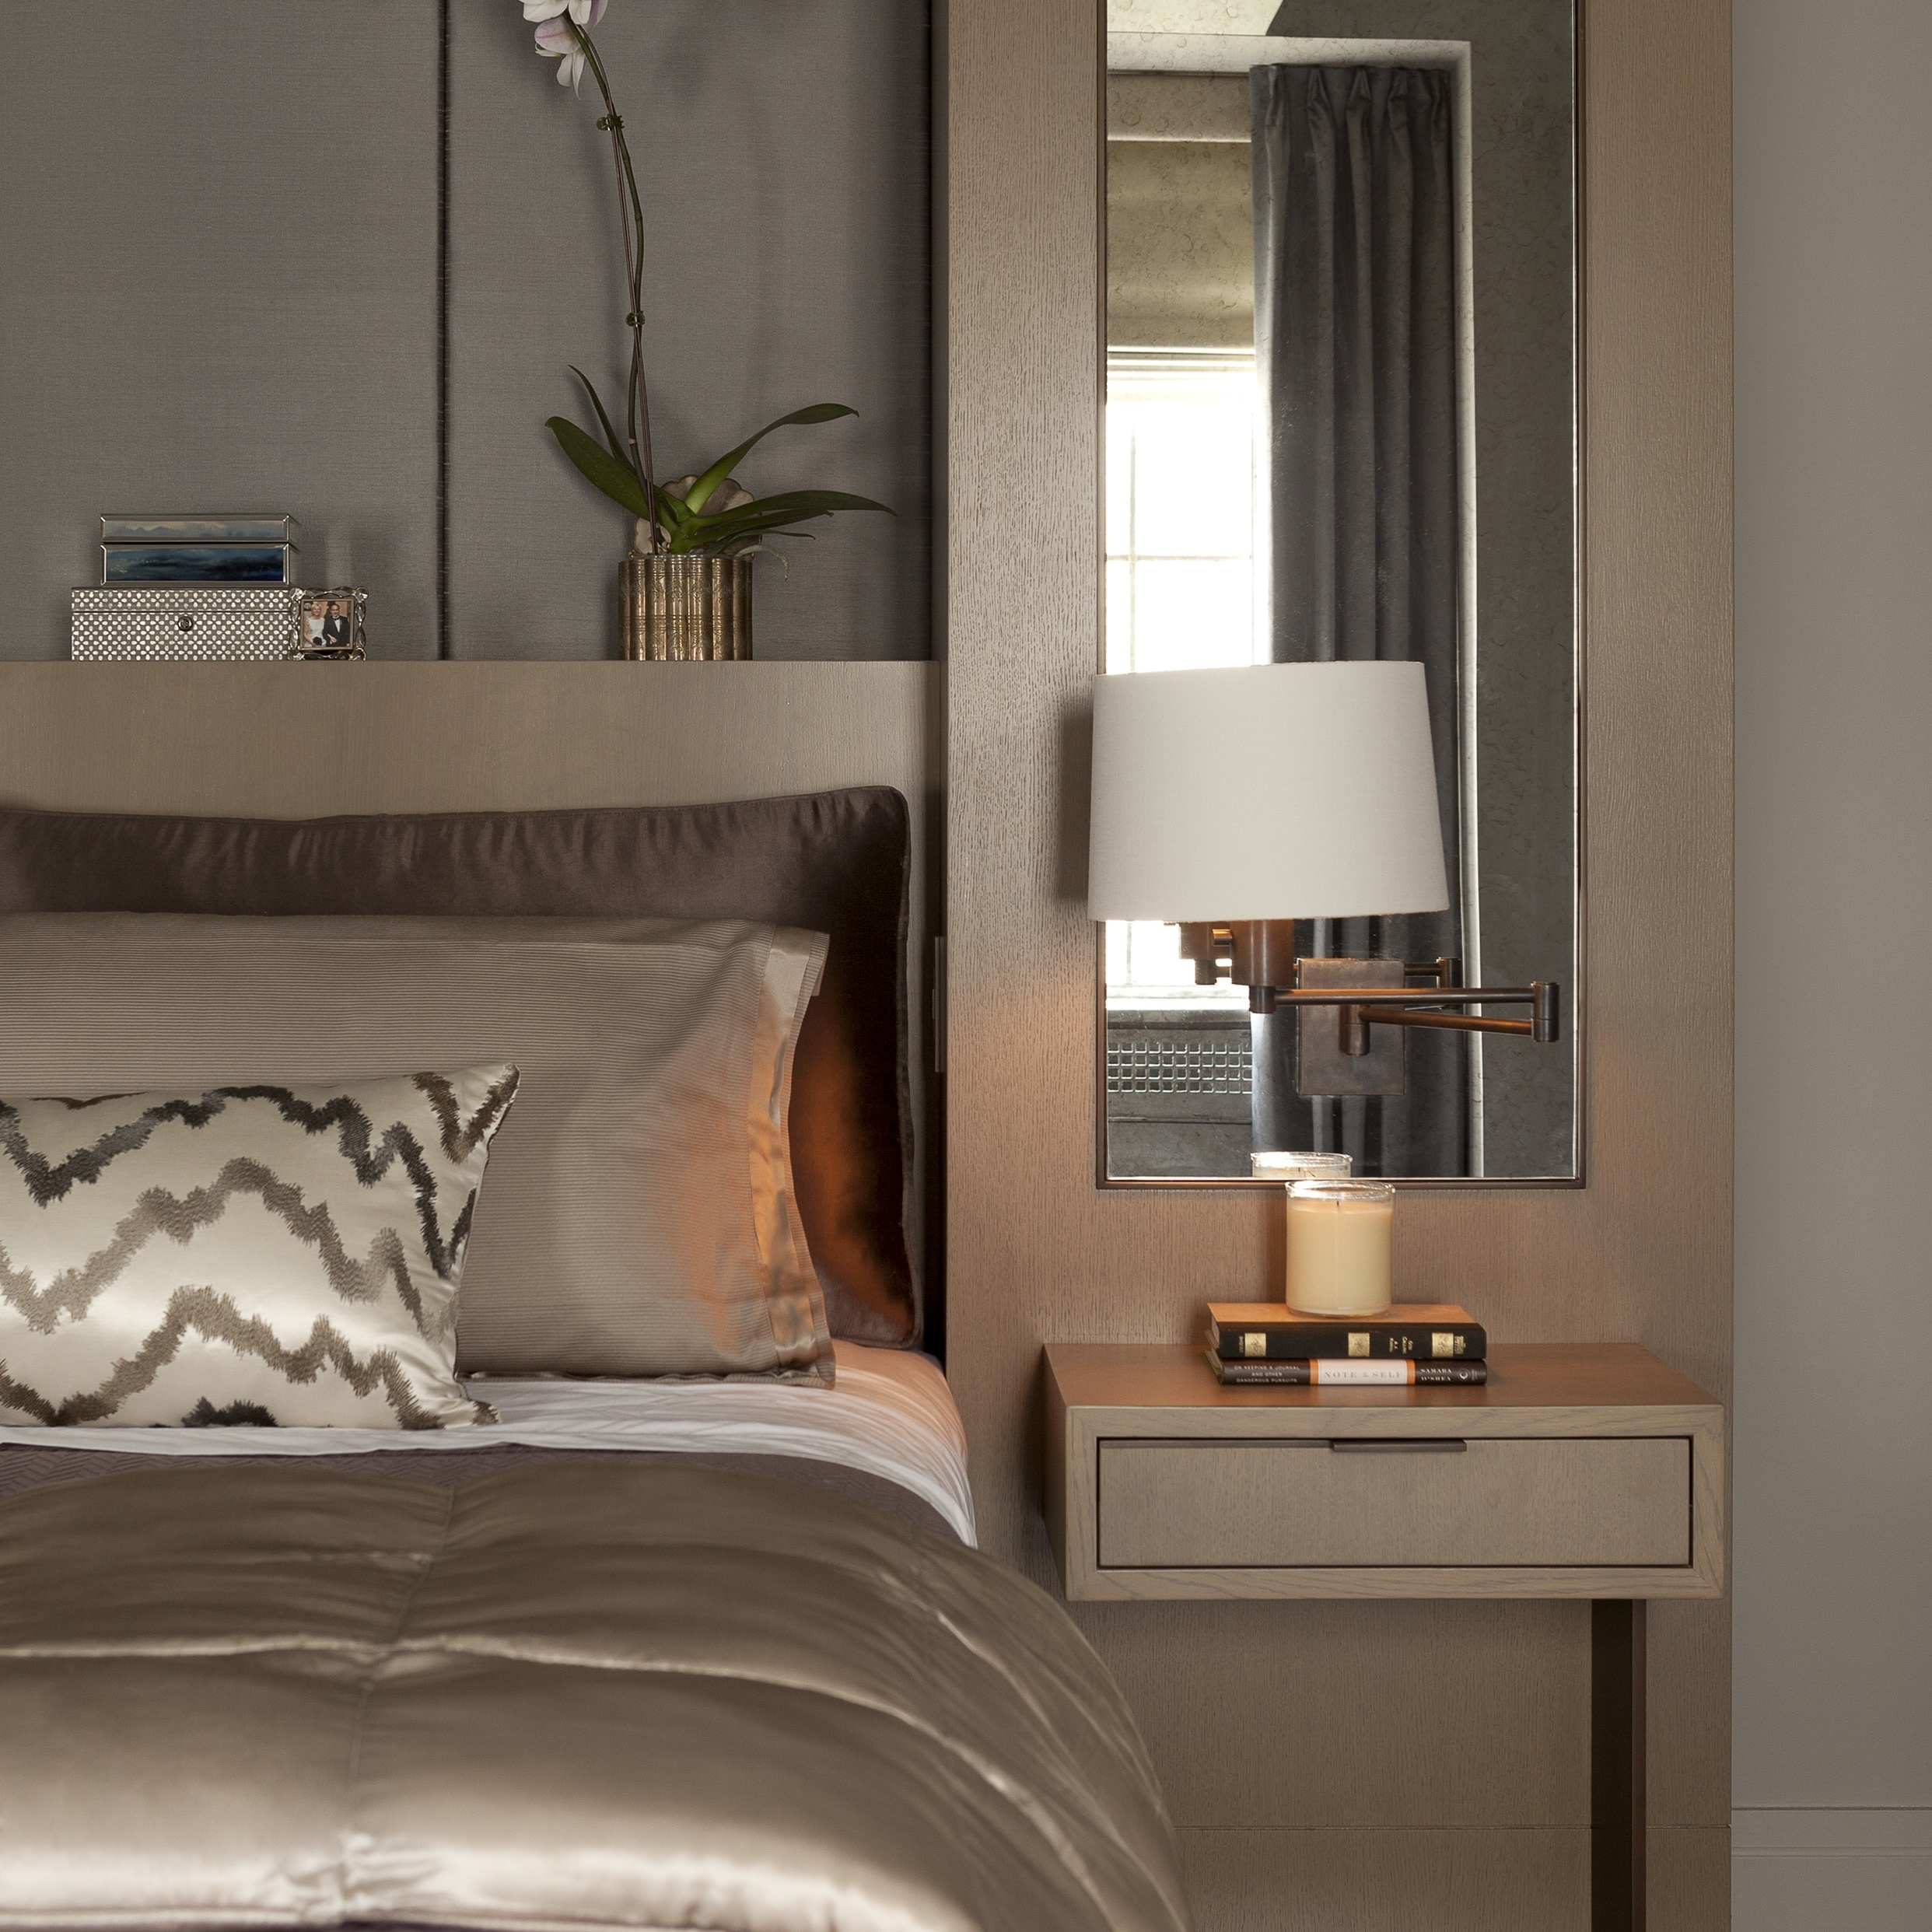 5 bedroom hacks to cure insomnia – Blog by Darci Hether New York